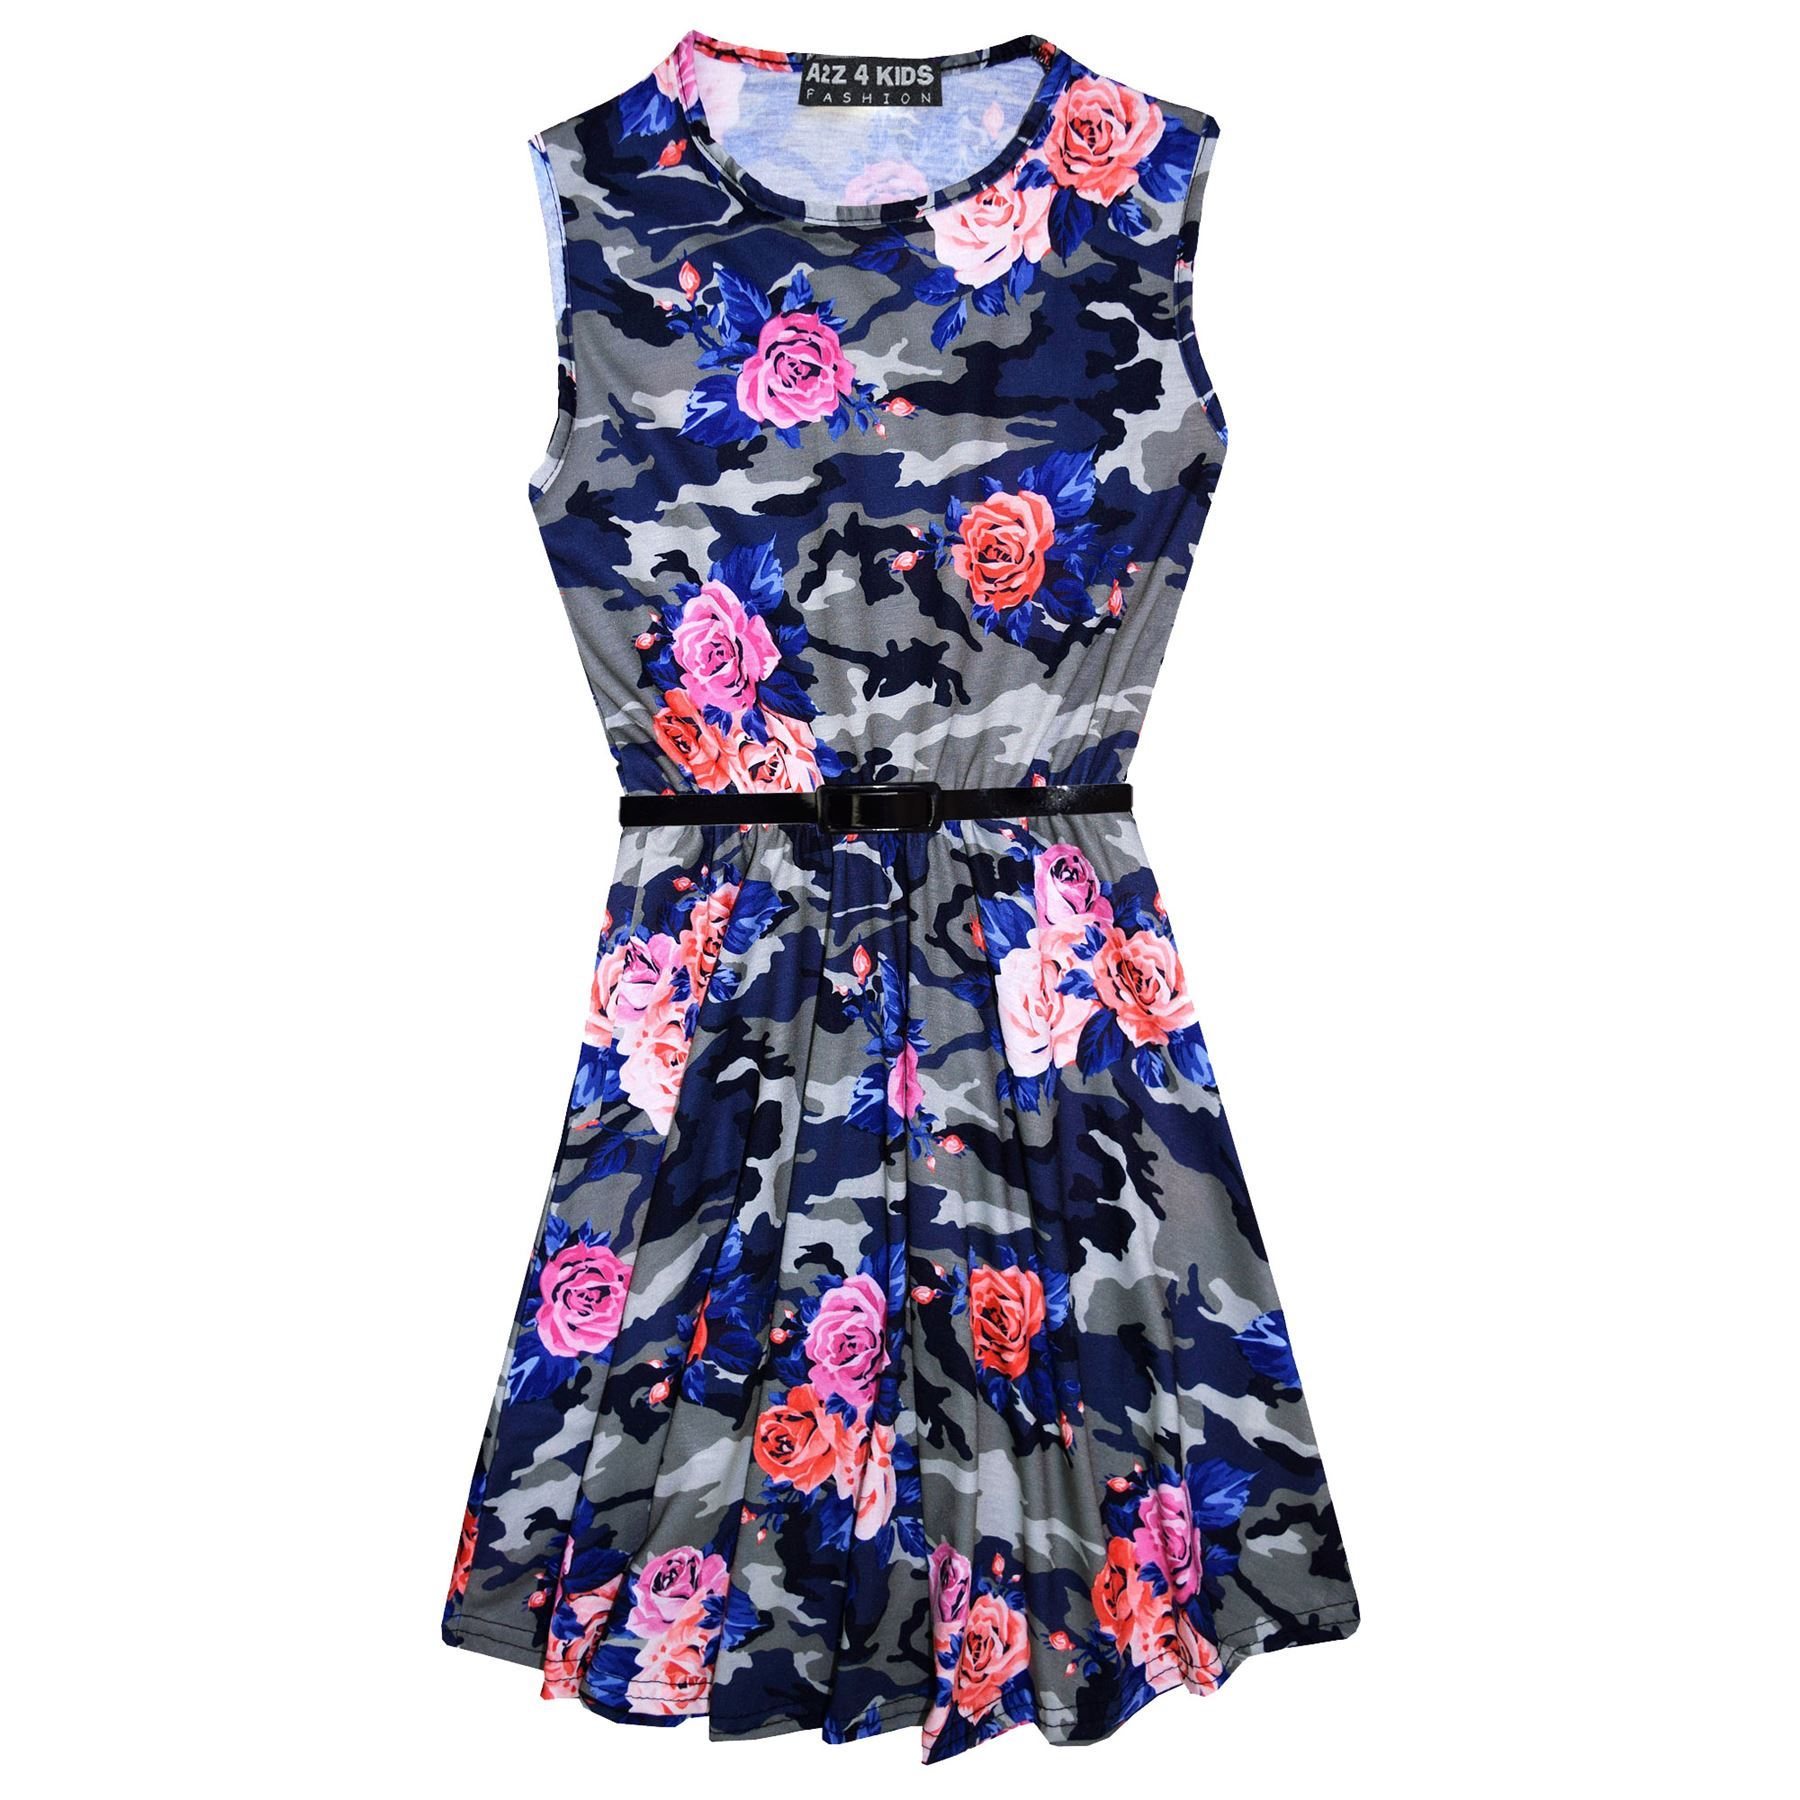 Girls-Skater-Dress-Kids-Camo-Floral-Print-Summer-Party-Dresses-Age-7-13-Years thumbnail 7